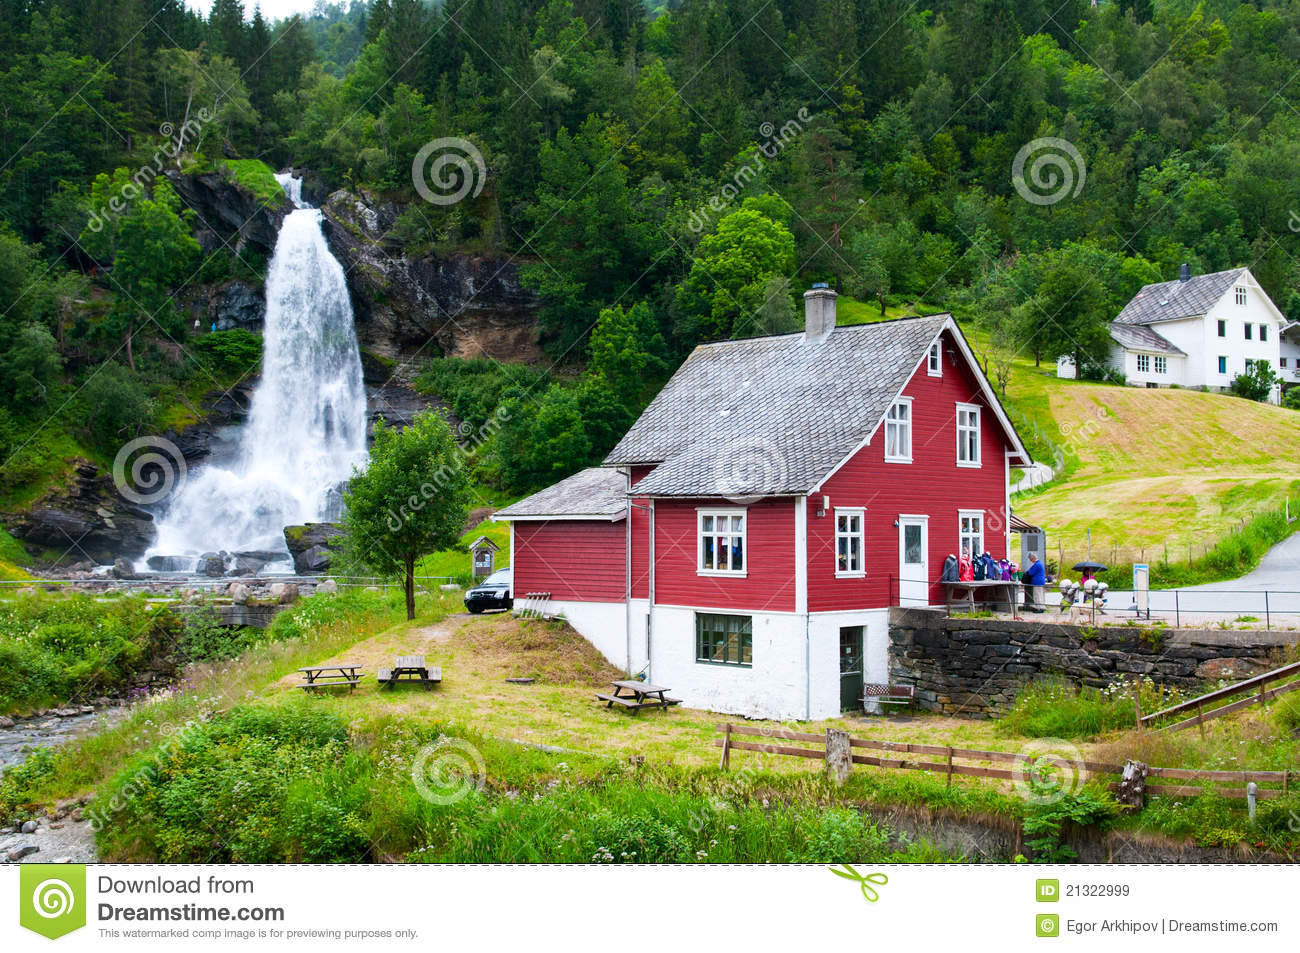 Waterfall steindalsfossen royalty free stock images for Traditionelles haus